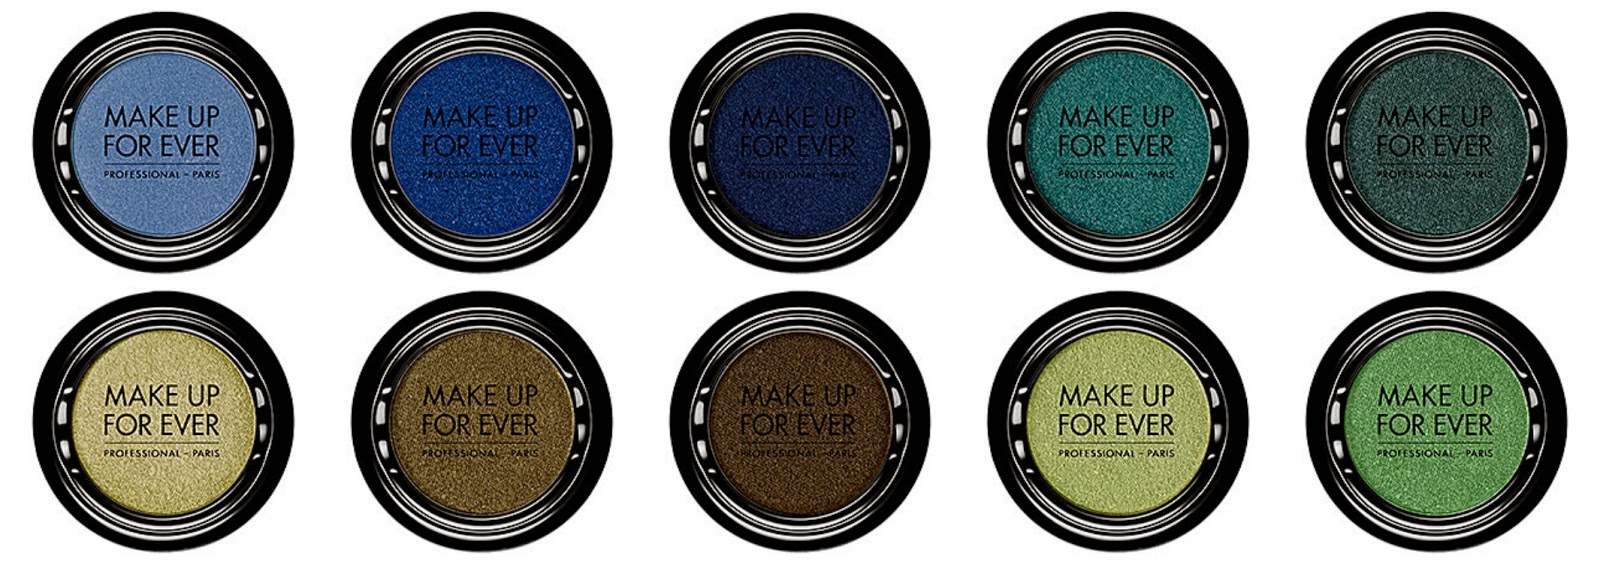 Make Up For Ever Artist Shadow Top from left: I212 Periwinkle I218 Indigo Blue I220 SapphireI238 Blue Cedar I300 Pine Green Bottom from left: I318 Linen Khaki I324 Bronze Khaki I328 Bronze I330 Linden Green I332 Meadow Green